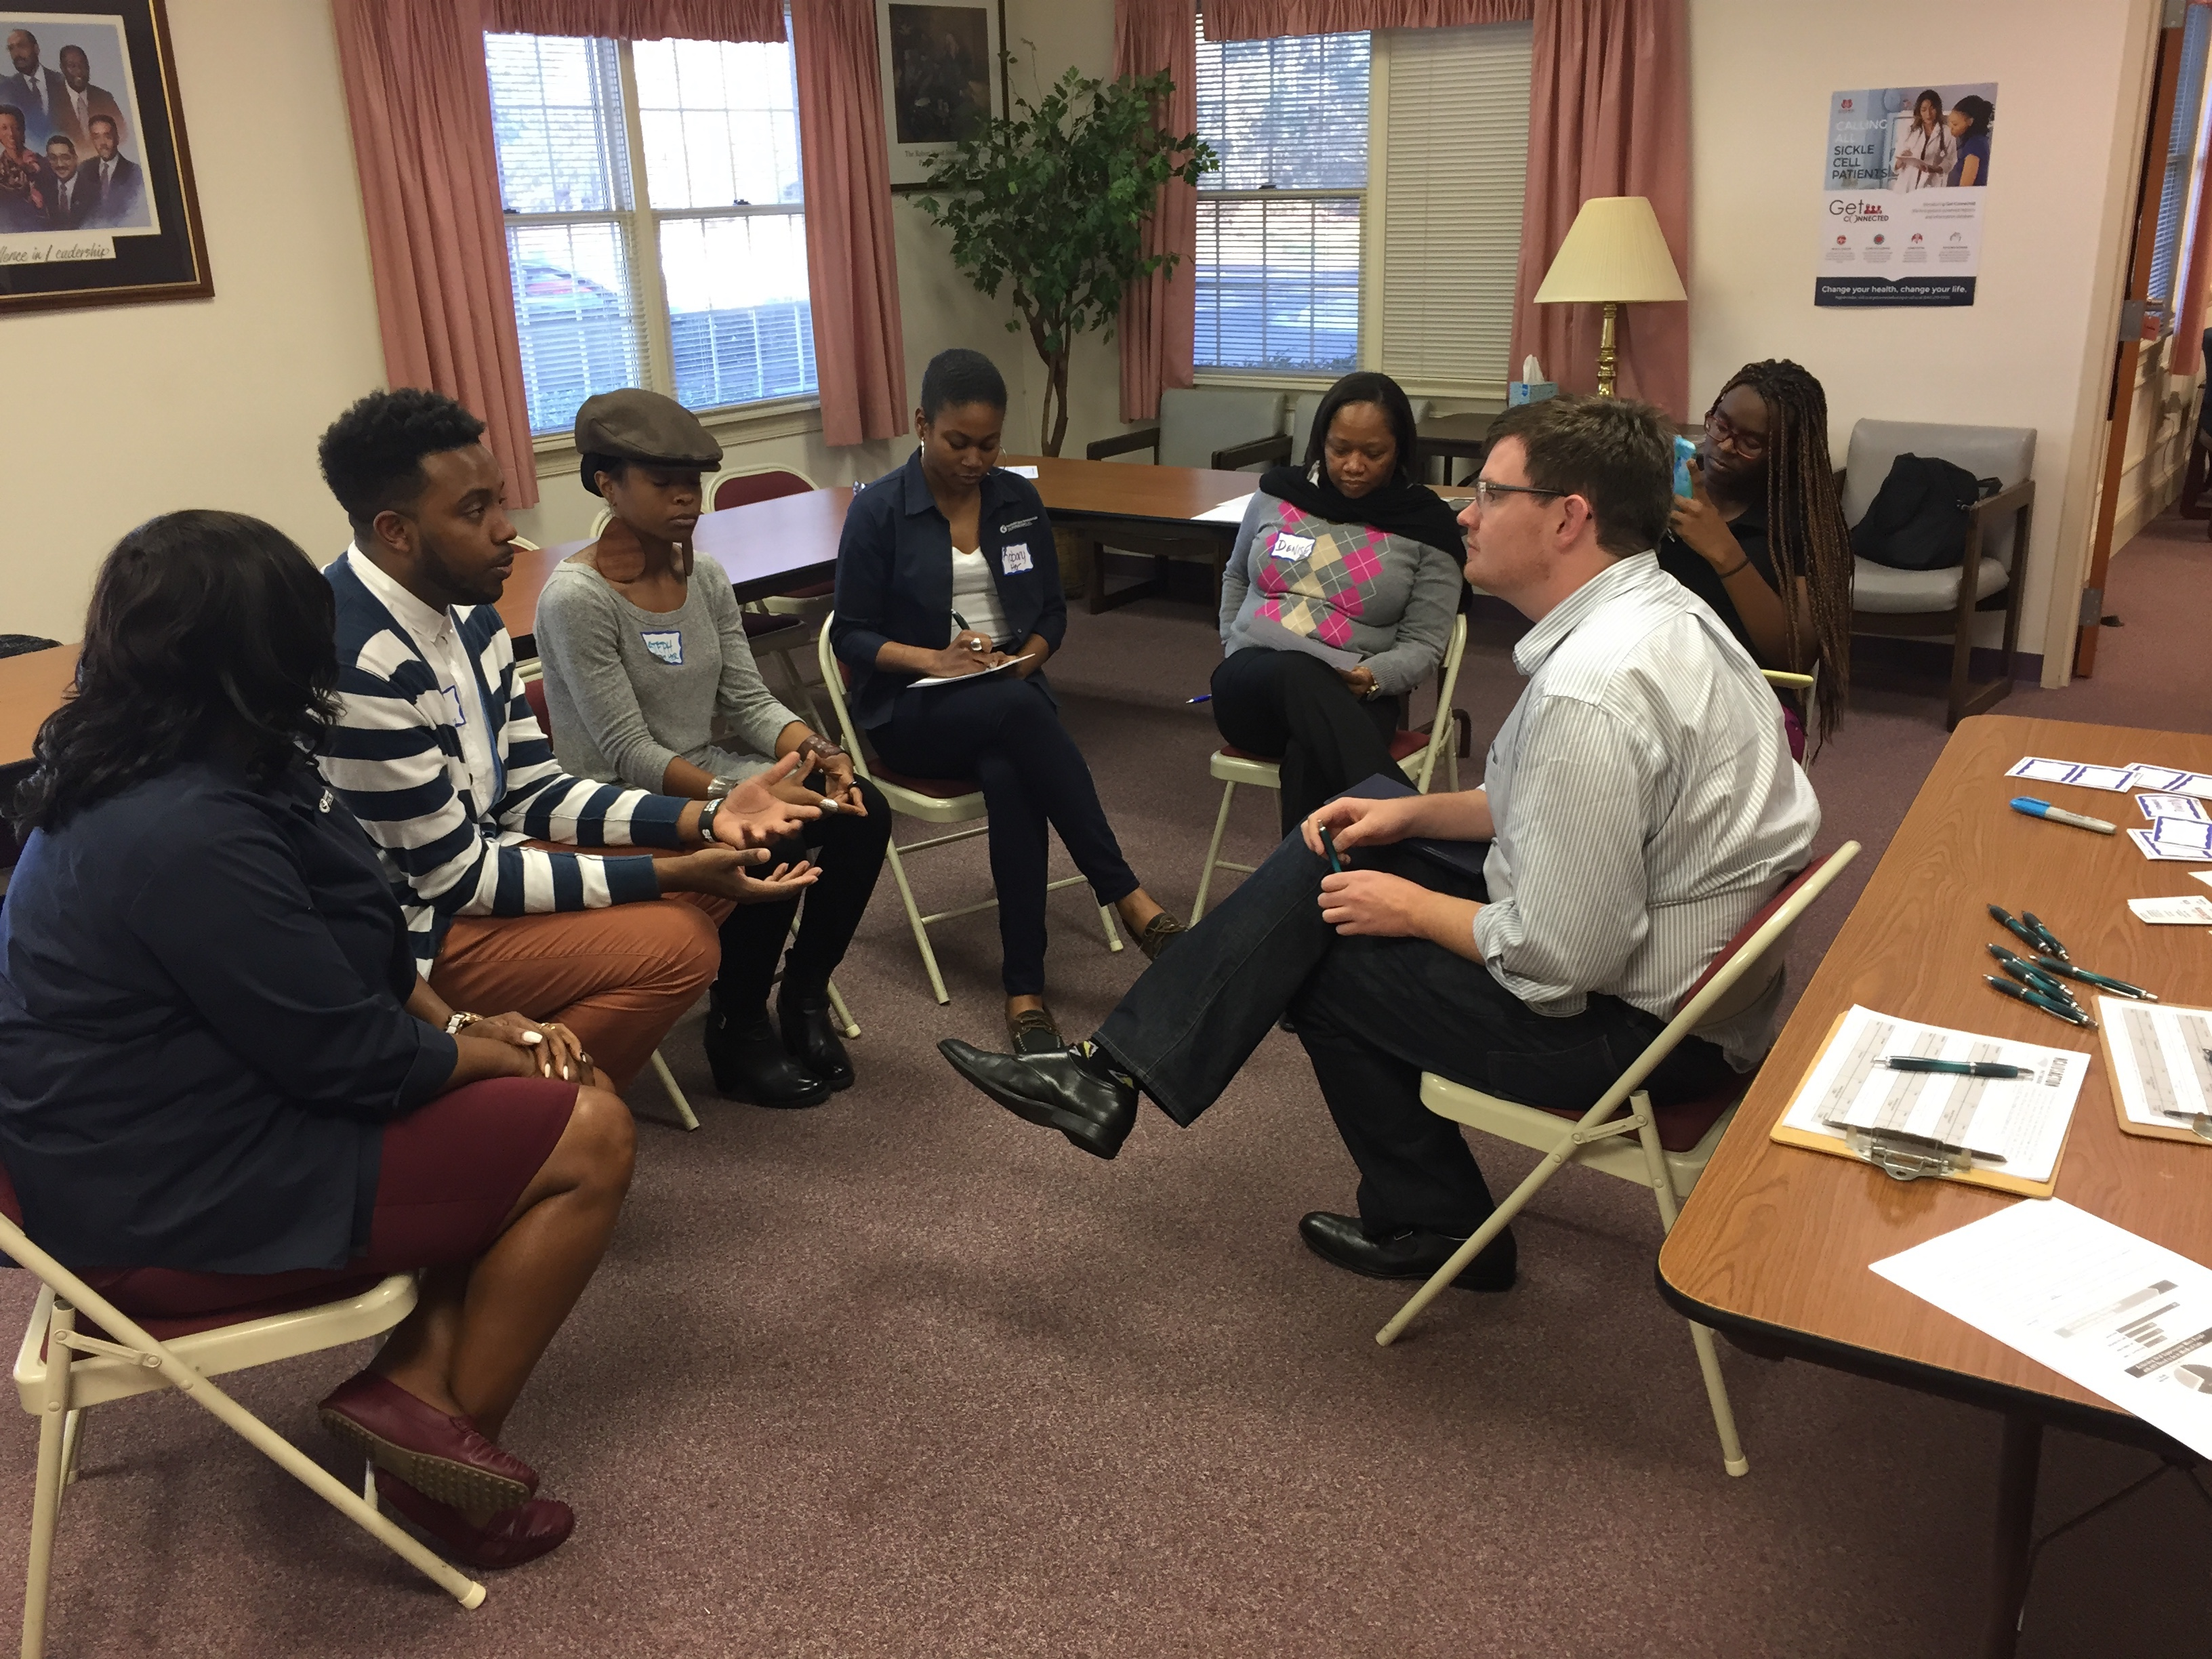 Pictured is Lee Storrow, executive director of the NC AIDS Action Network, meeting with community leaders and advocates. His organization created their first endowment with NCCF in 2019 and has already successfully grown the fund to support their work for years to come.